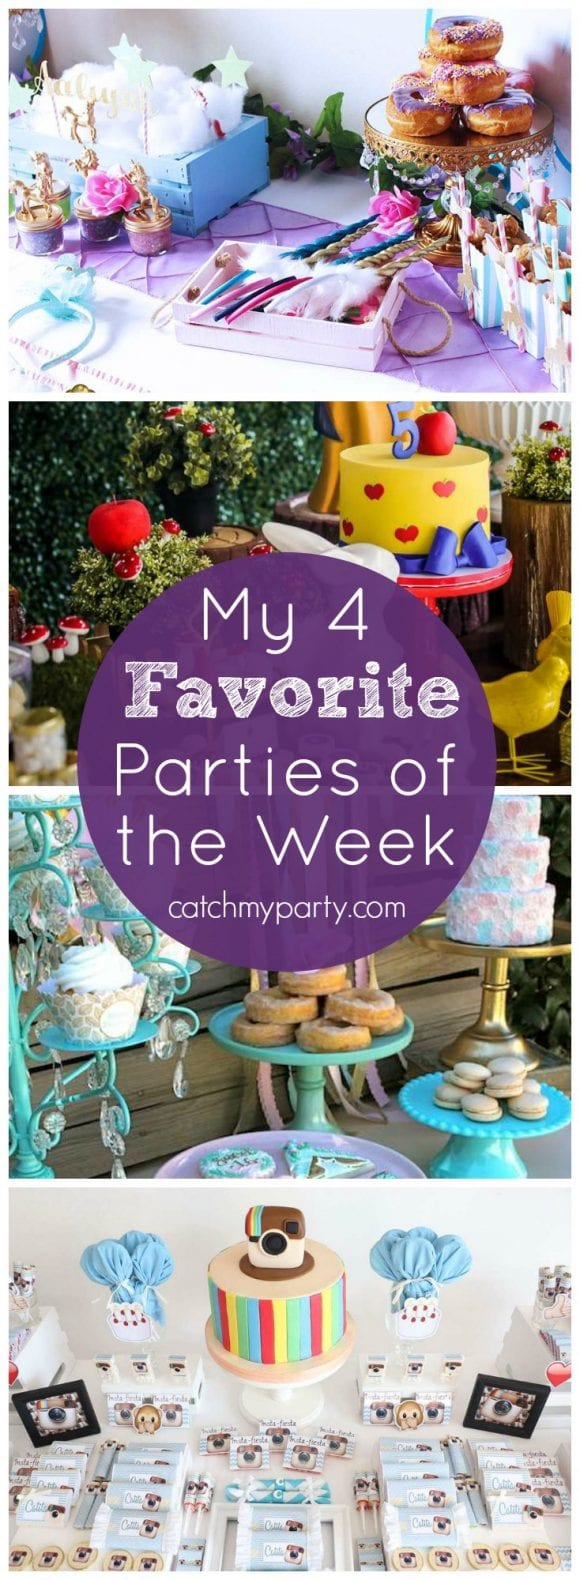 My 4 favorite parties of the week include a unicorn birthday party, a snow white birthday party, a boho chic sweet 16, and an Instagram party! | Catchmyparty.com